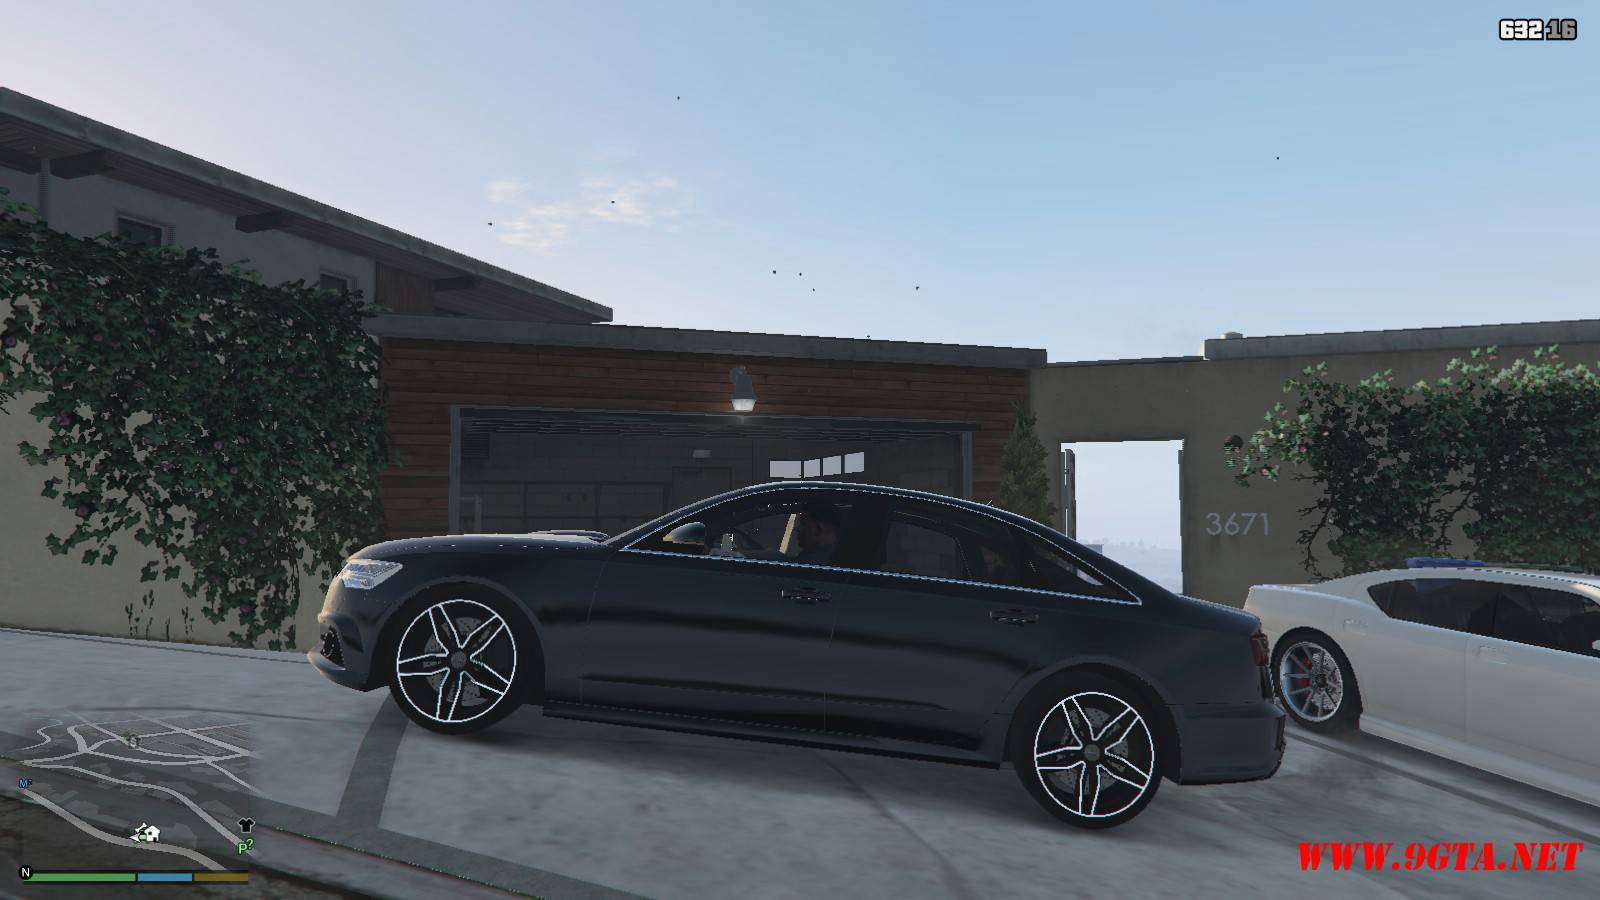 Audi A6 Mod For GTA5 (2)